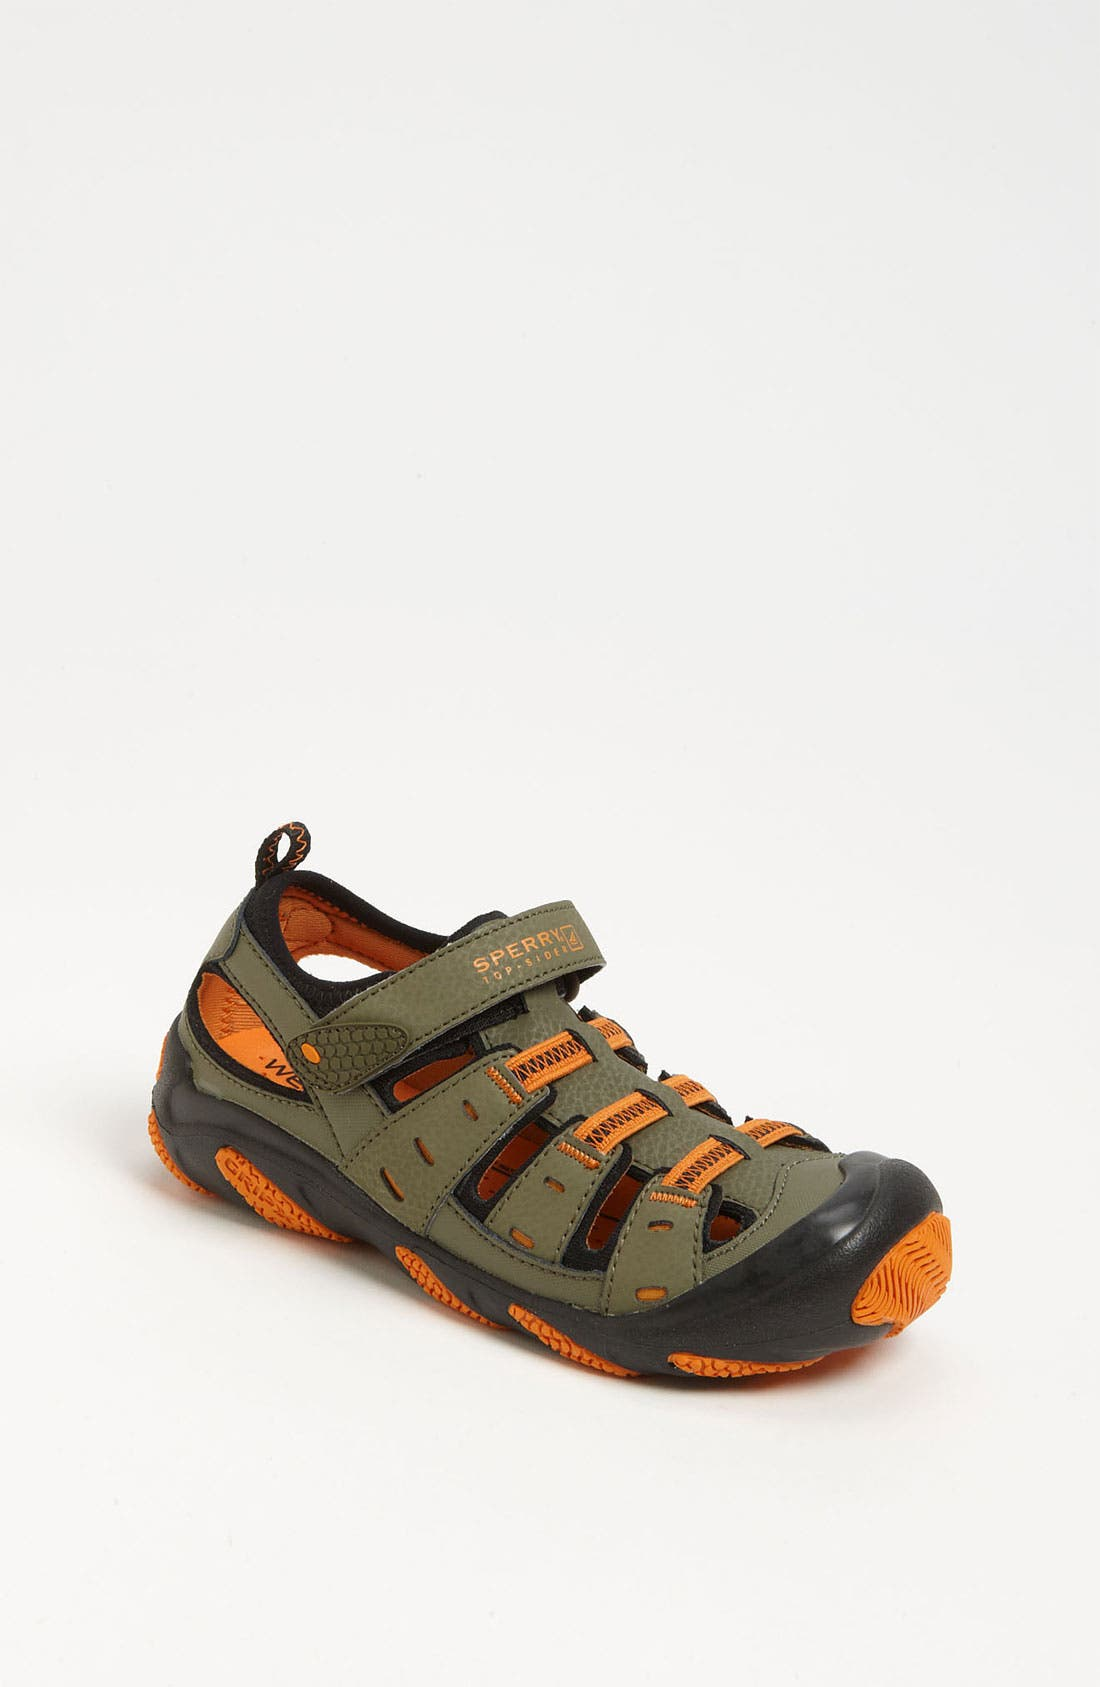 Main Image - Sperry Top-Sider® Kids 'Wet Tech Fisherman' Sandal (Walker, Toddler, Little Kid & Big Kid)